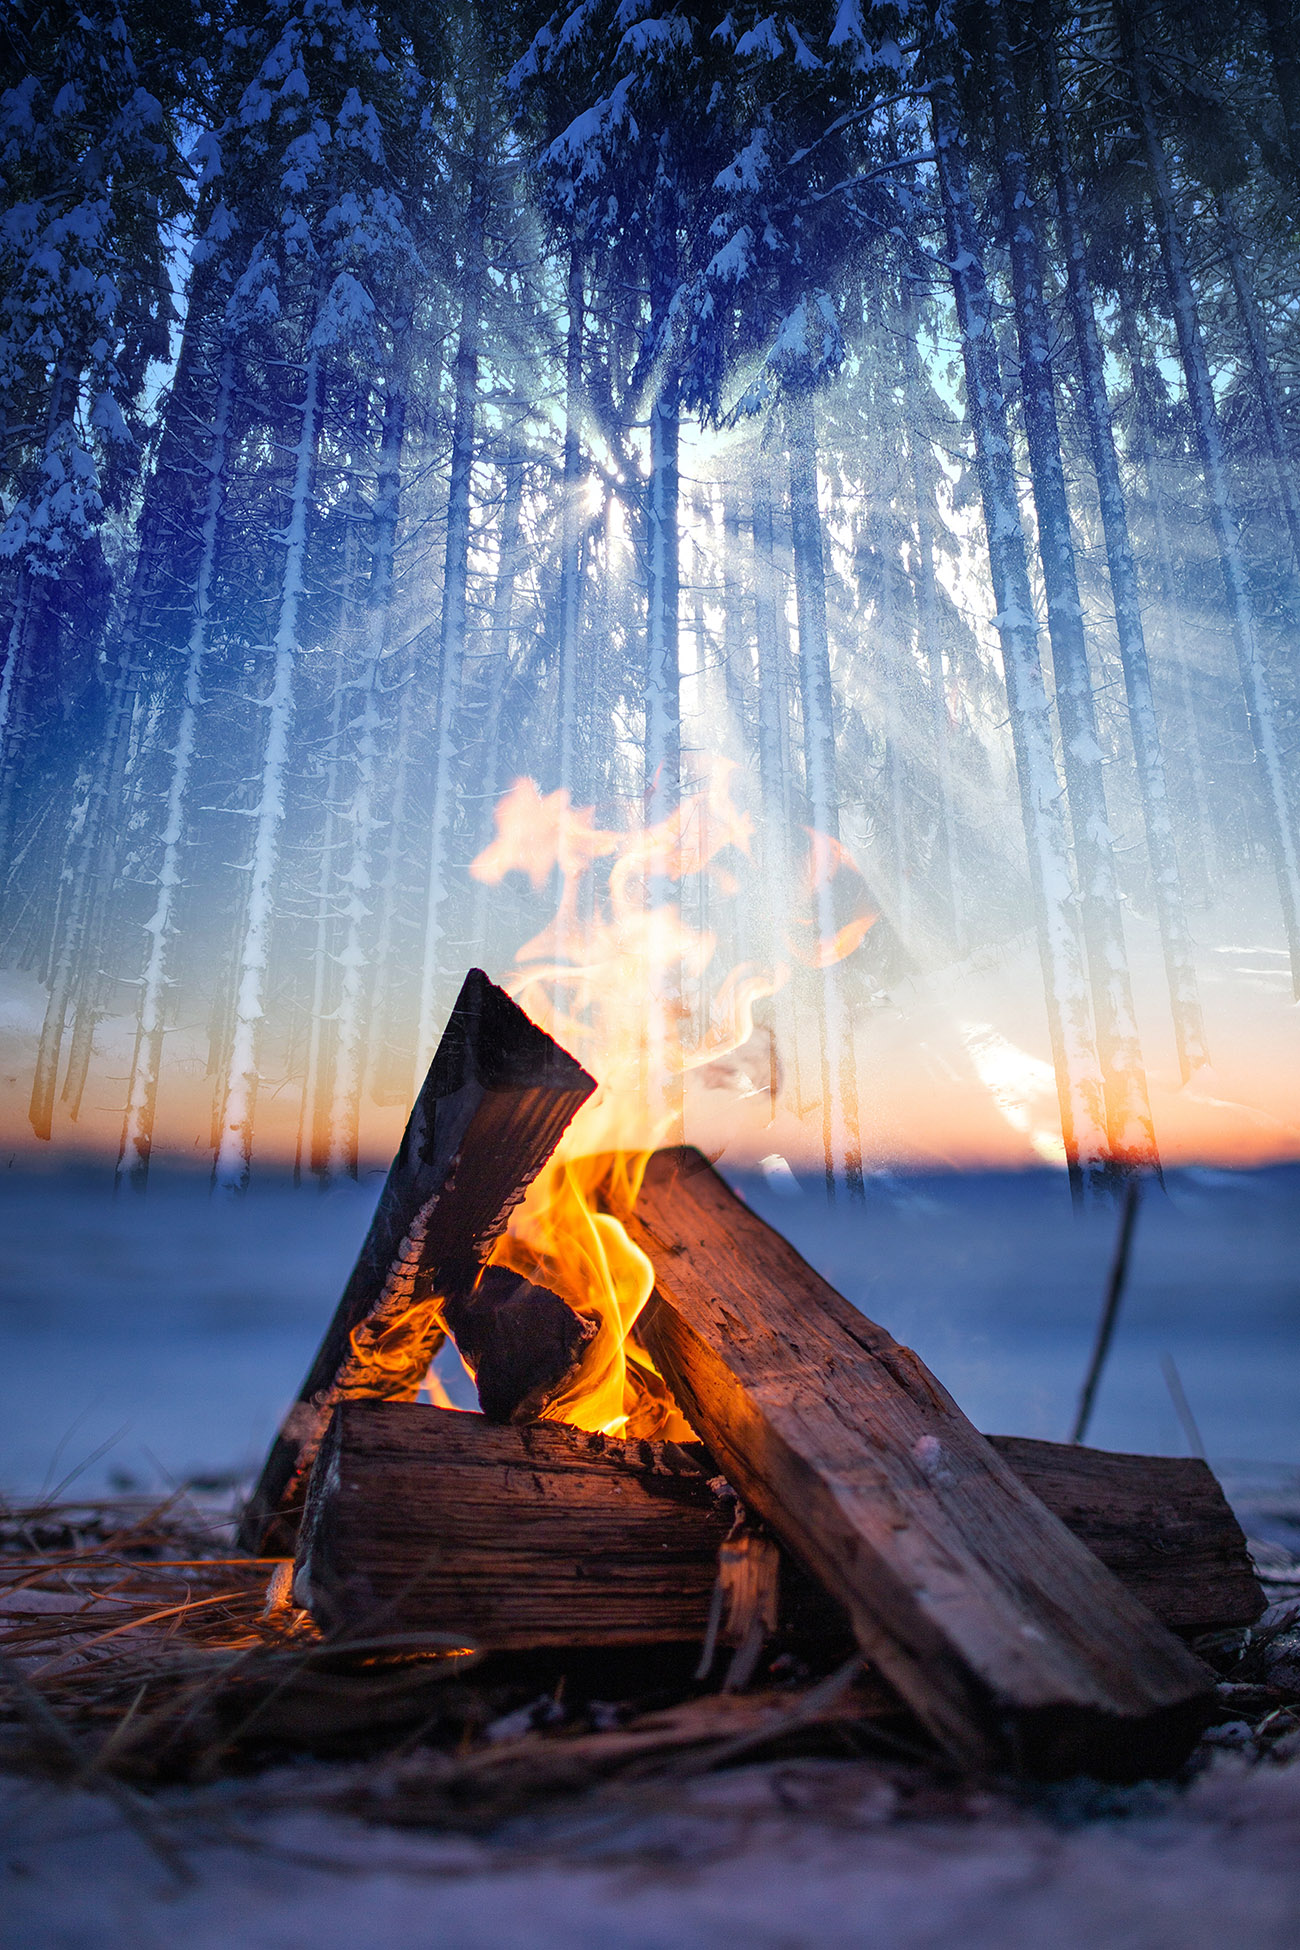 Wintery Wood Fire 01 - RF Stock Image